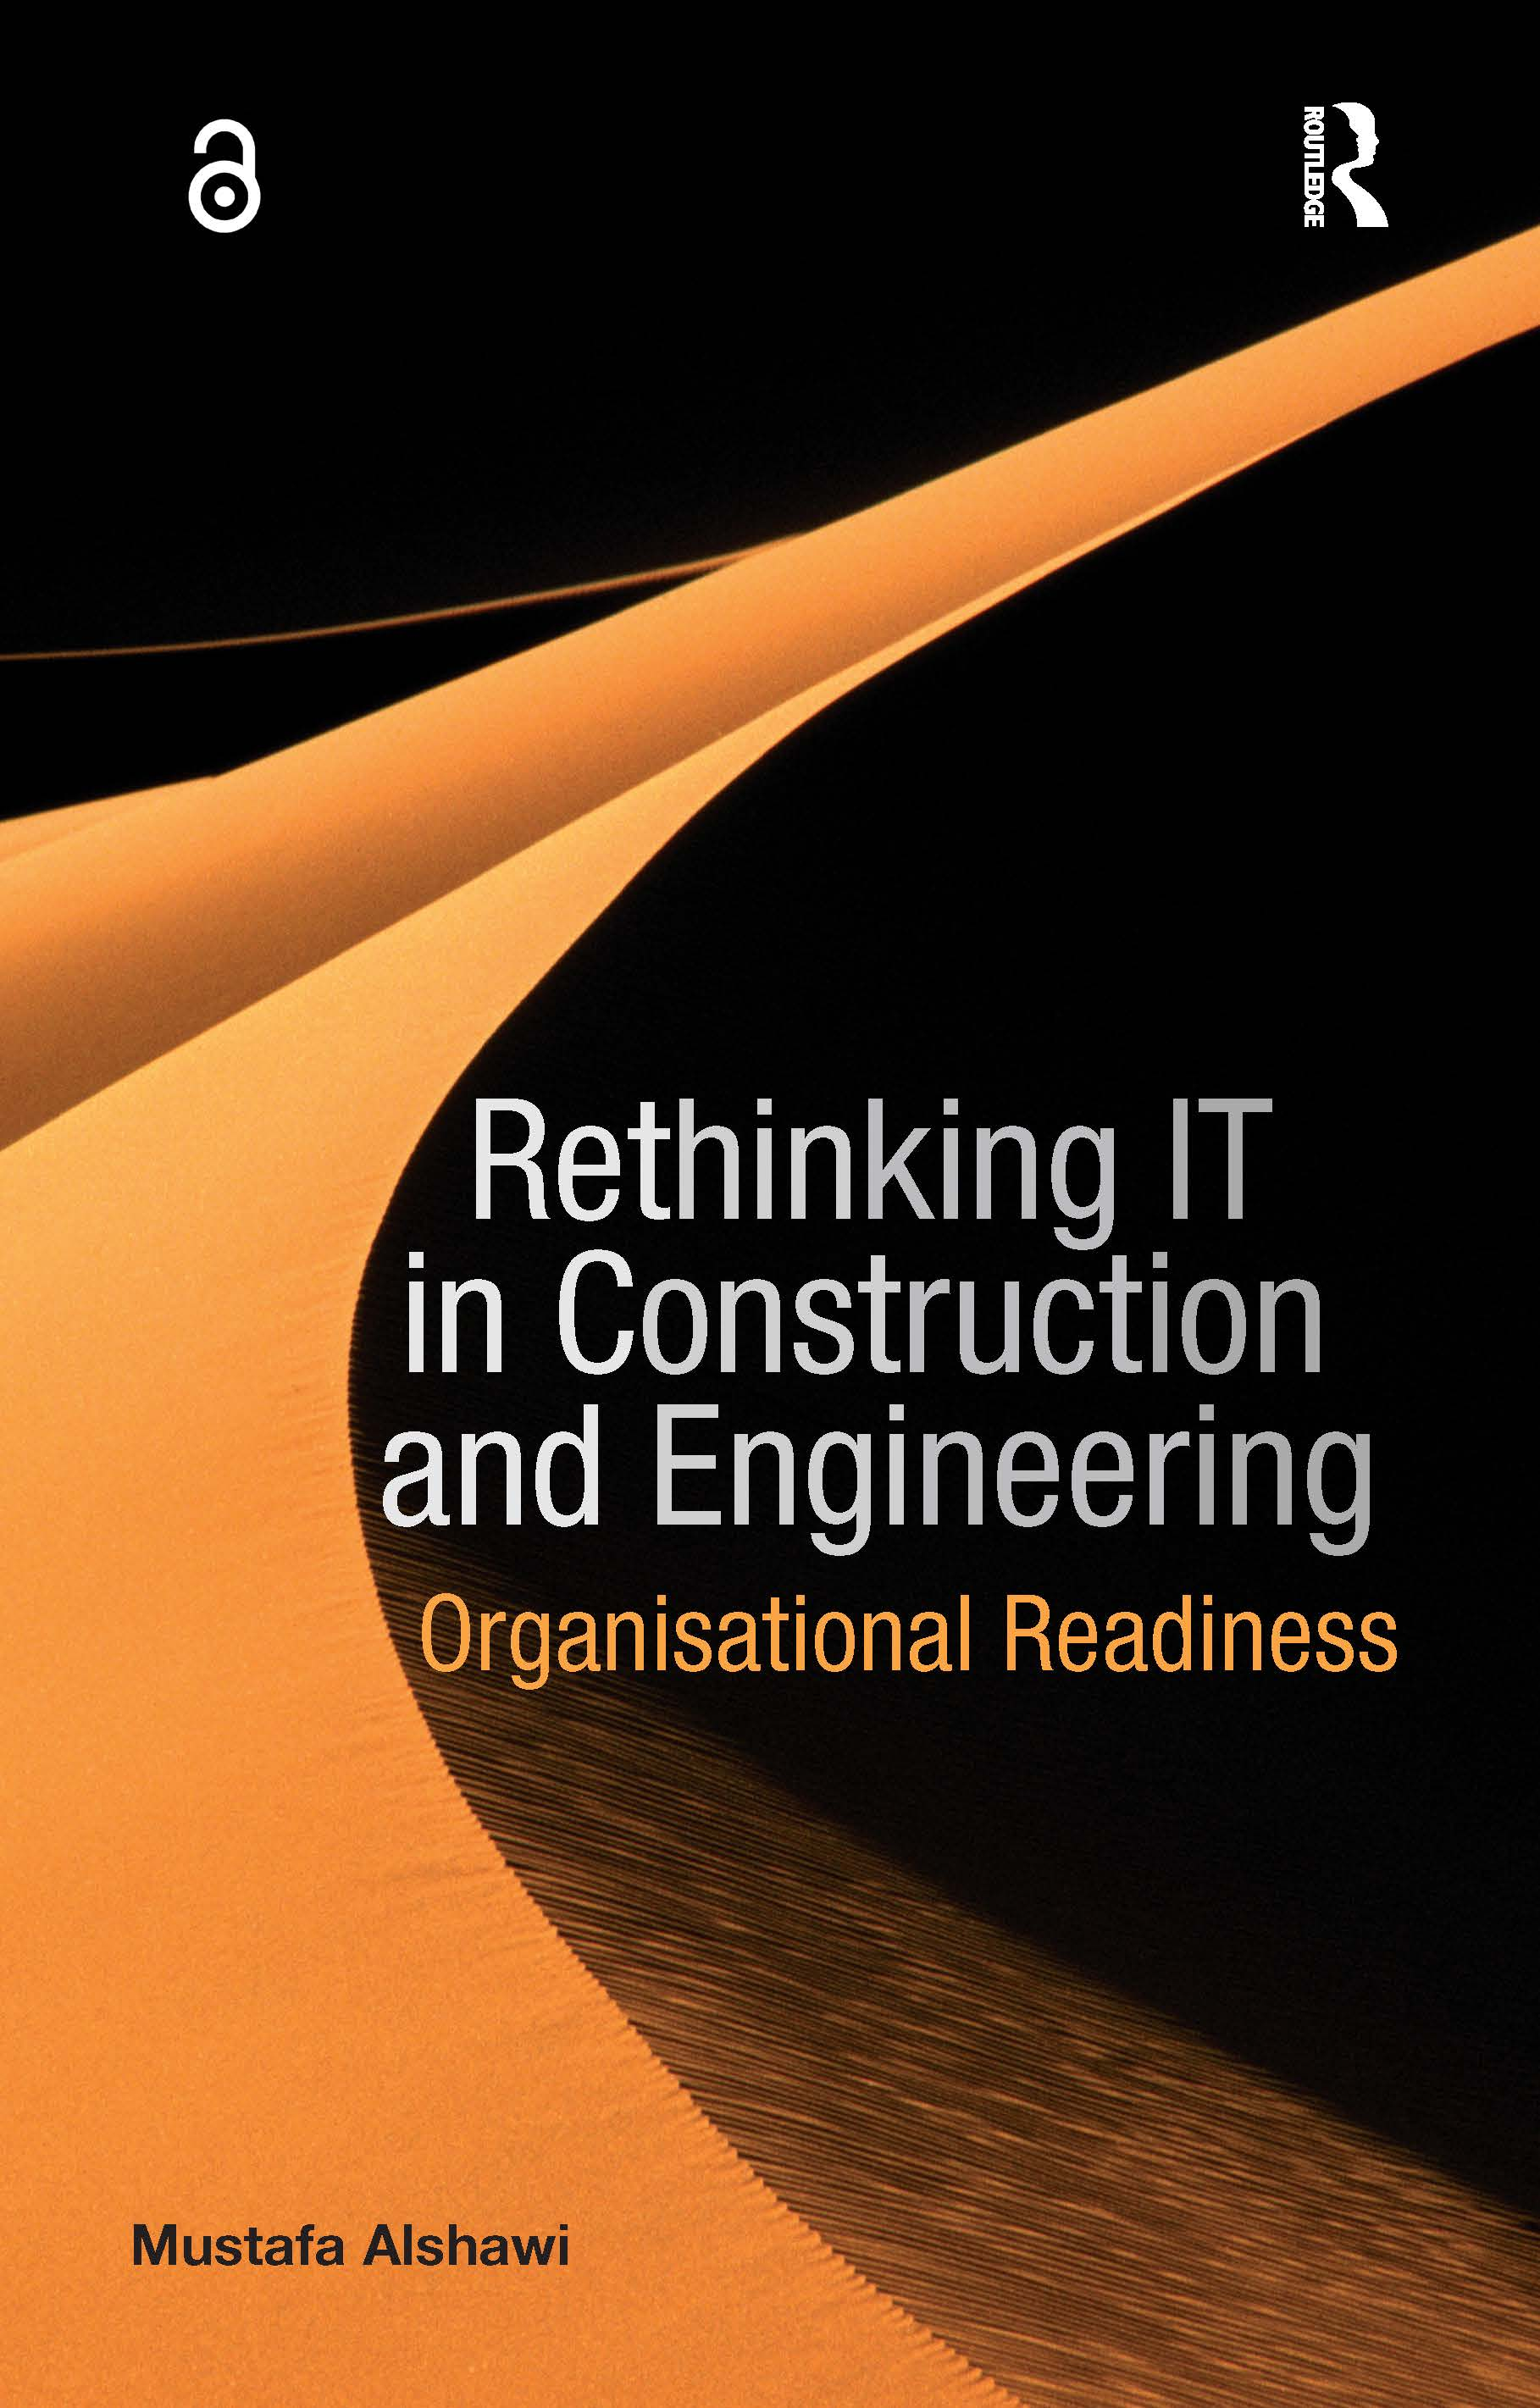 Rethinking IT in Construction and Engineering: Organisational Readiness, 1st Edition (Hardback) book cover